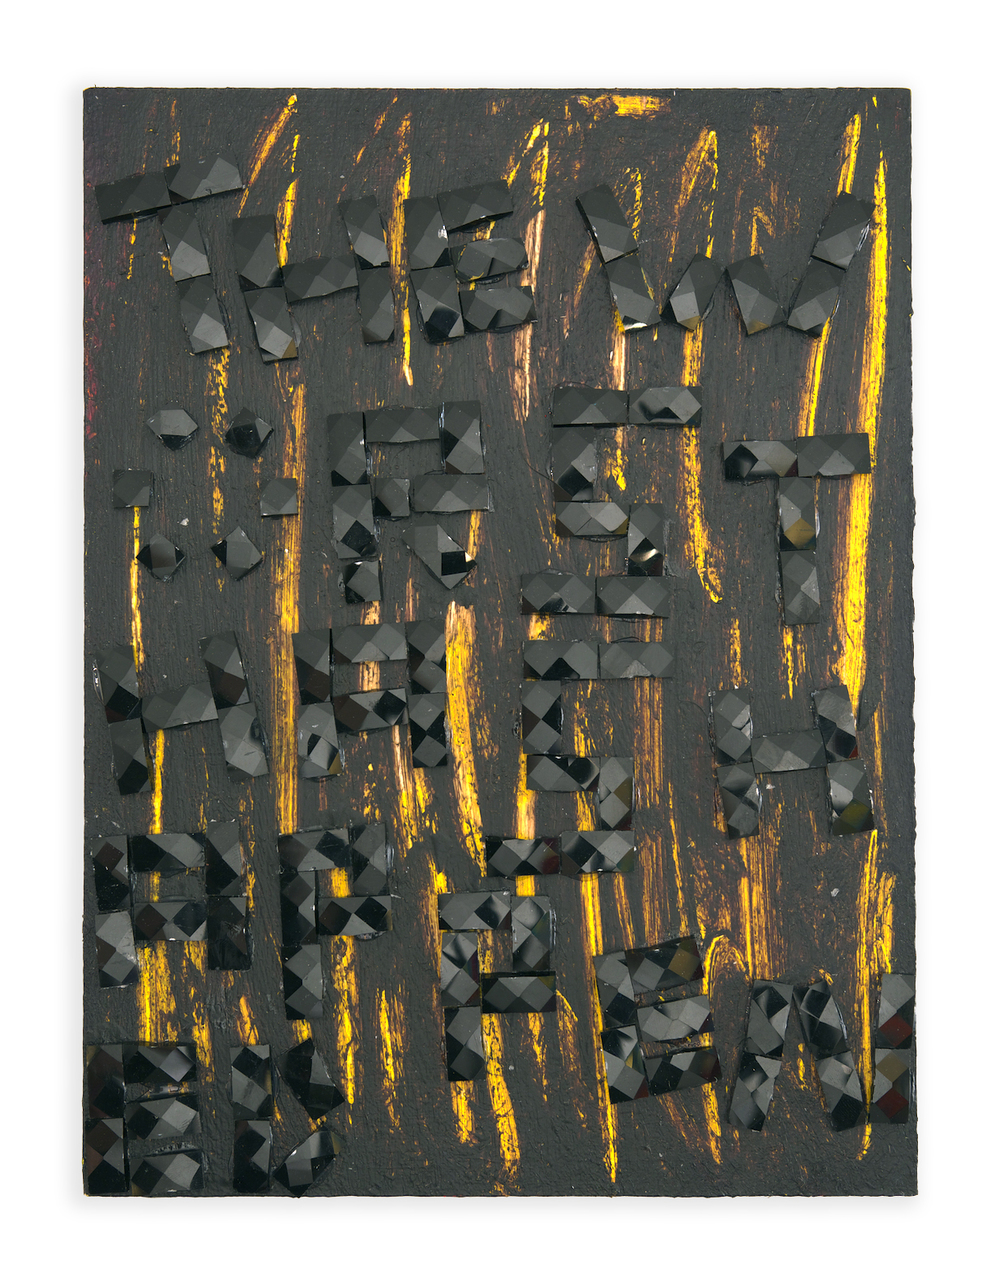 Uh Oh , 2014, acrylic and glass tile on wood, 12 x 9 in